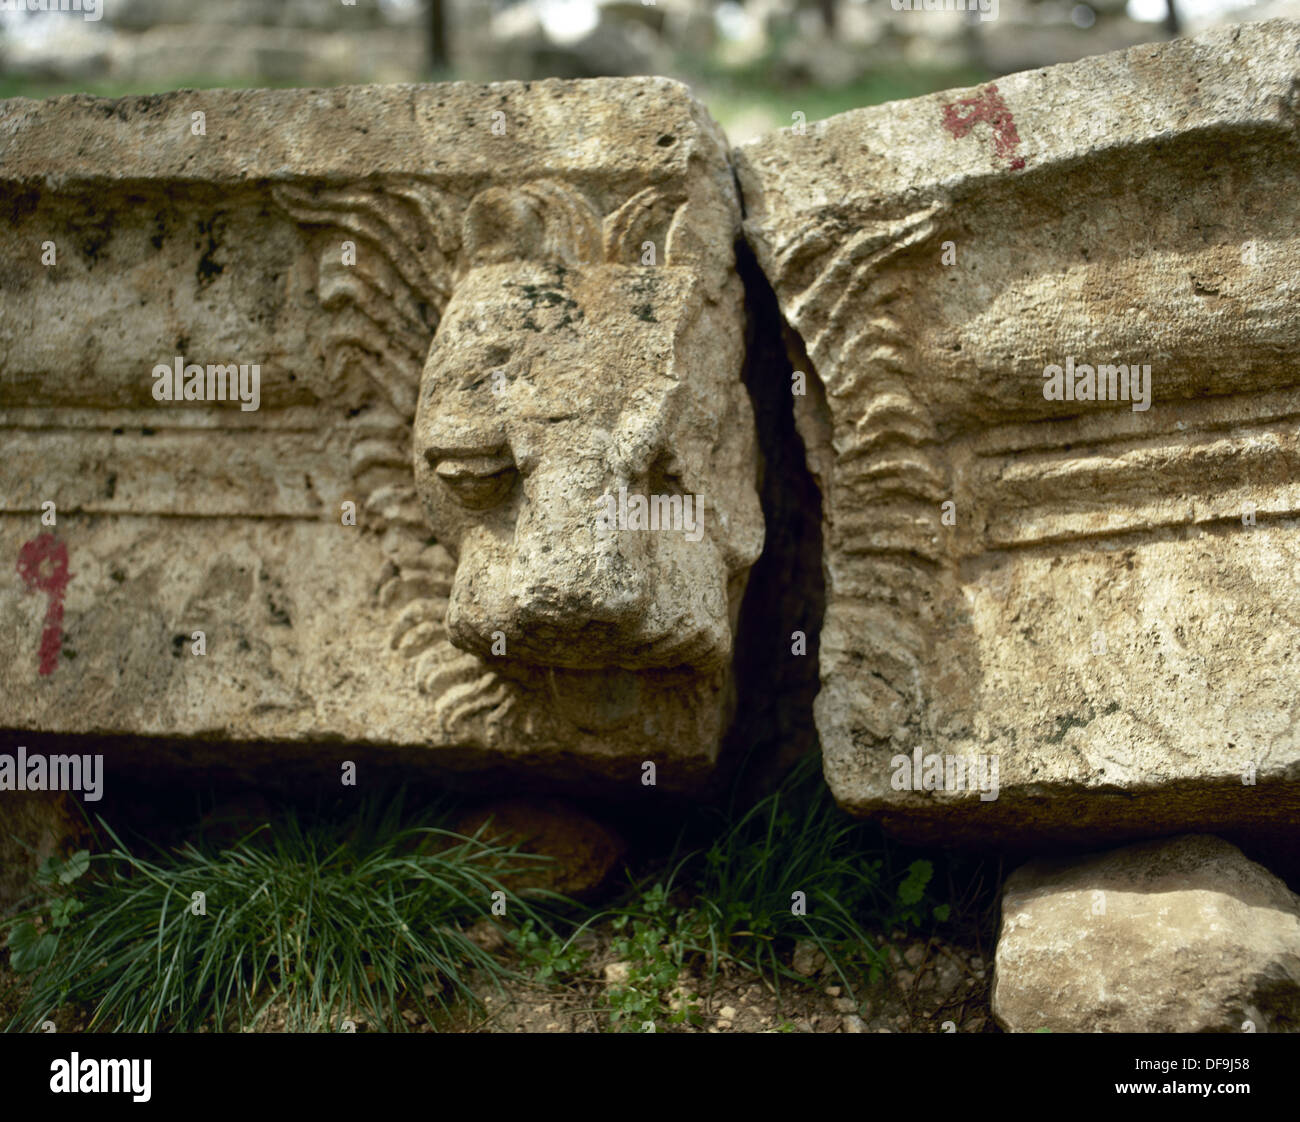 Basilica of Saint Simeon Stylites. 5th century. Sculptural detail depicting a head of a lion. Near Aleppo. Syria. - Stock Image